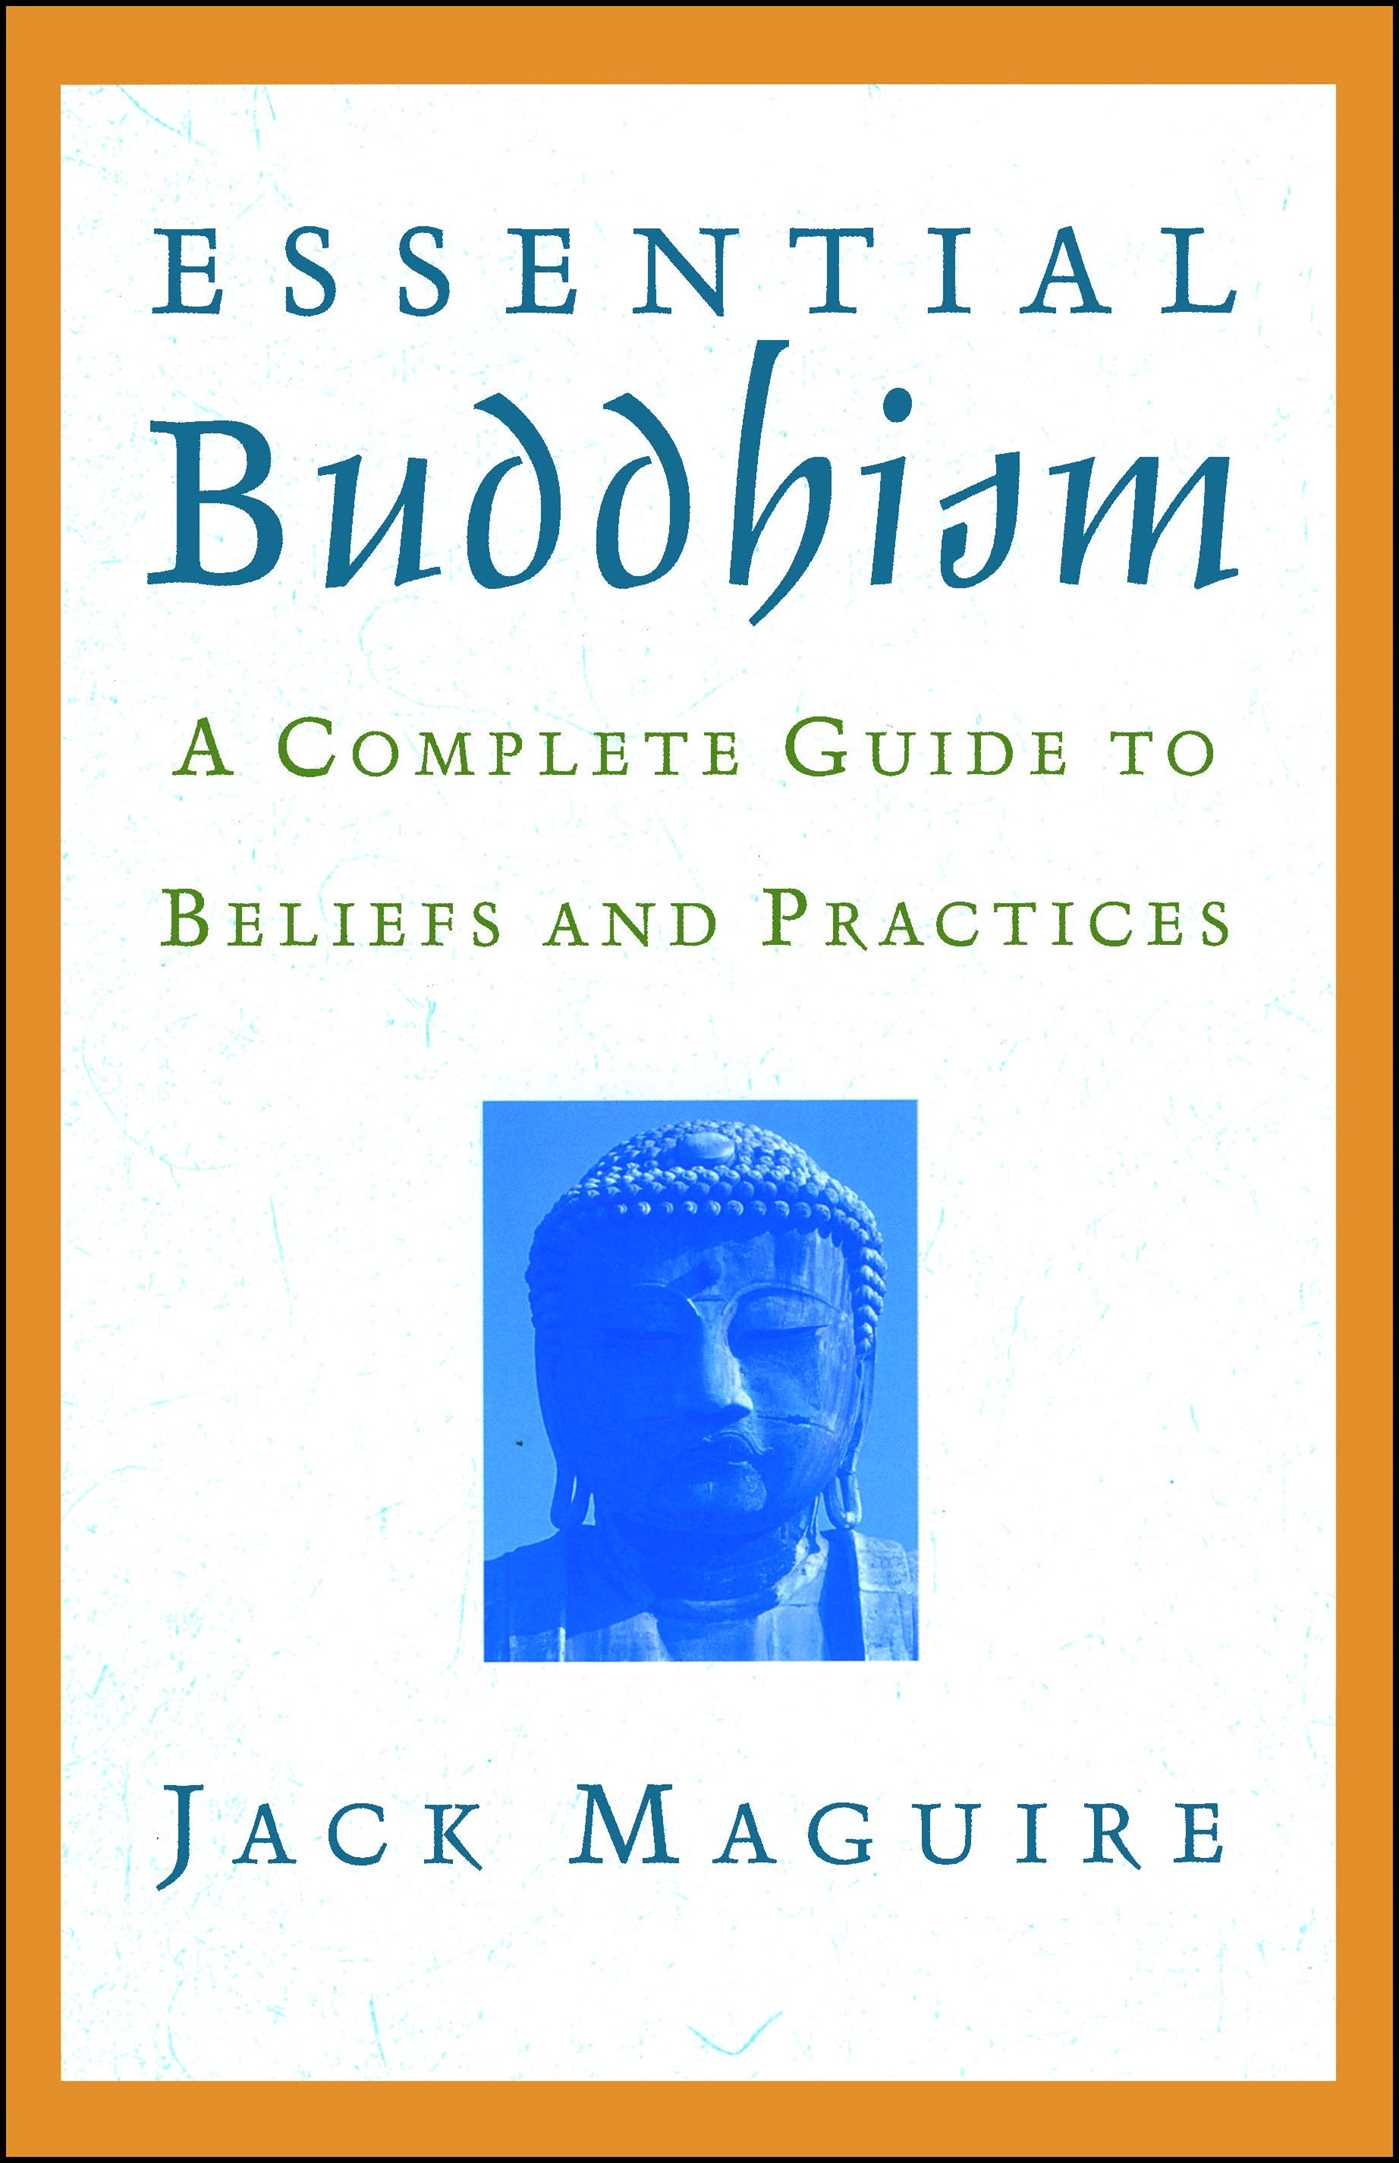 Essential buddhism 9780671041885 hr